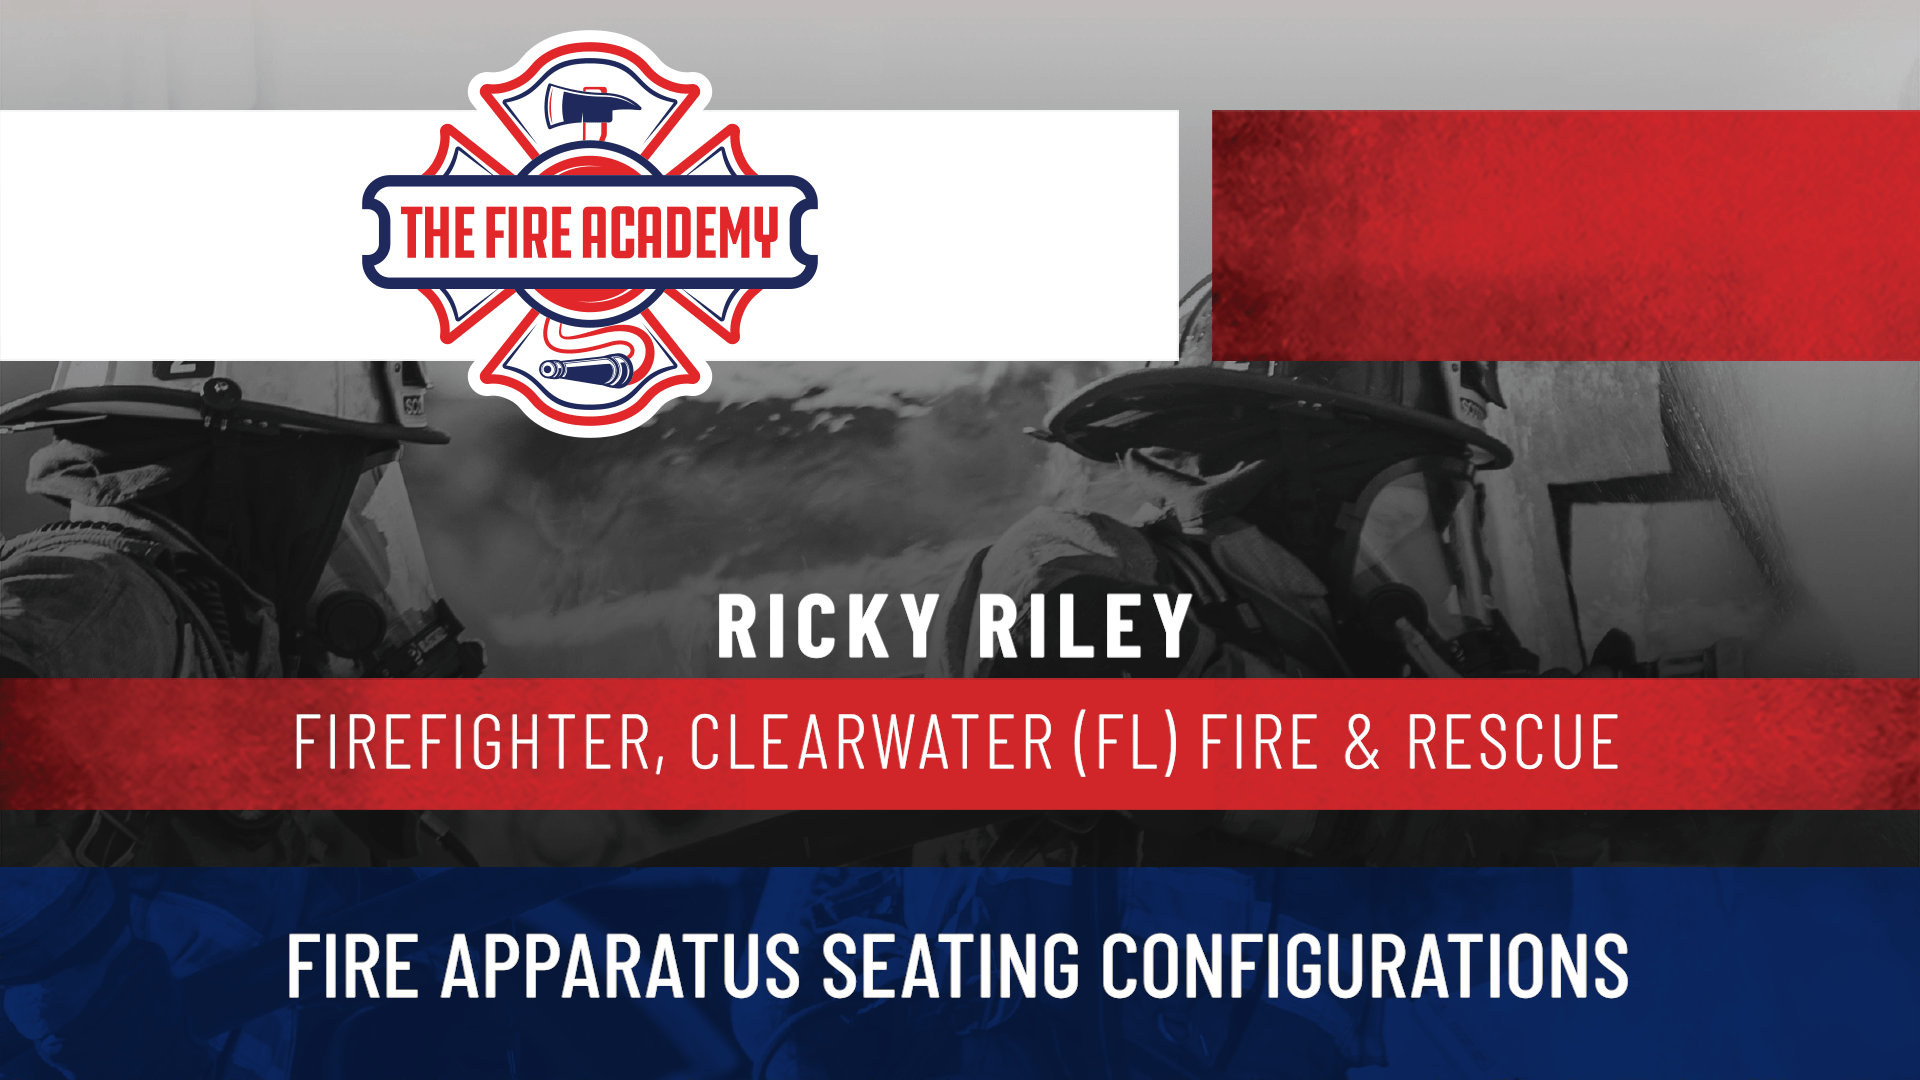 Fire Apparatus Seating Configurations